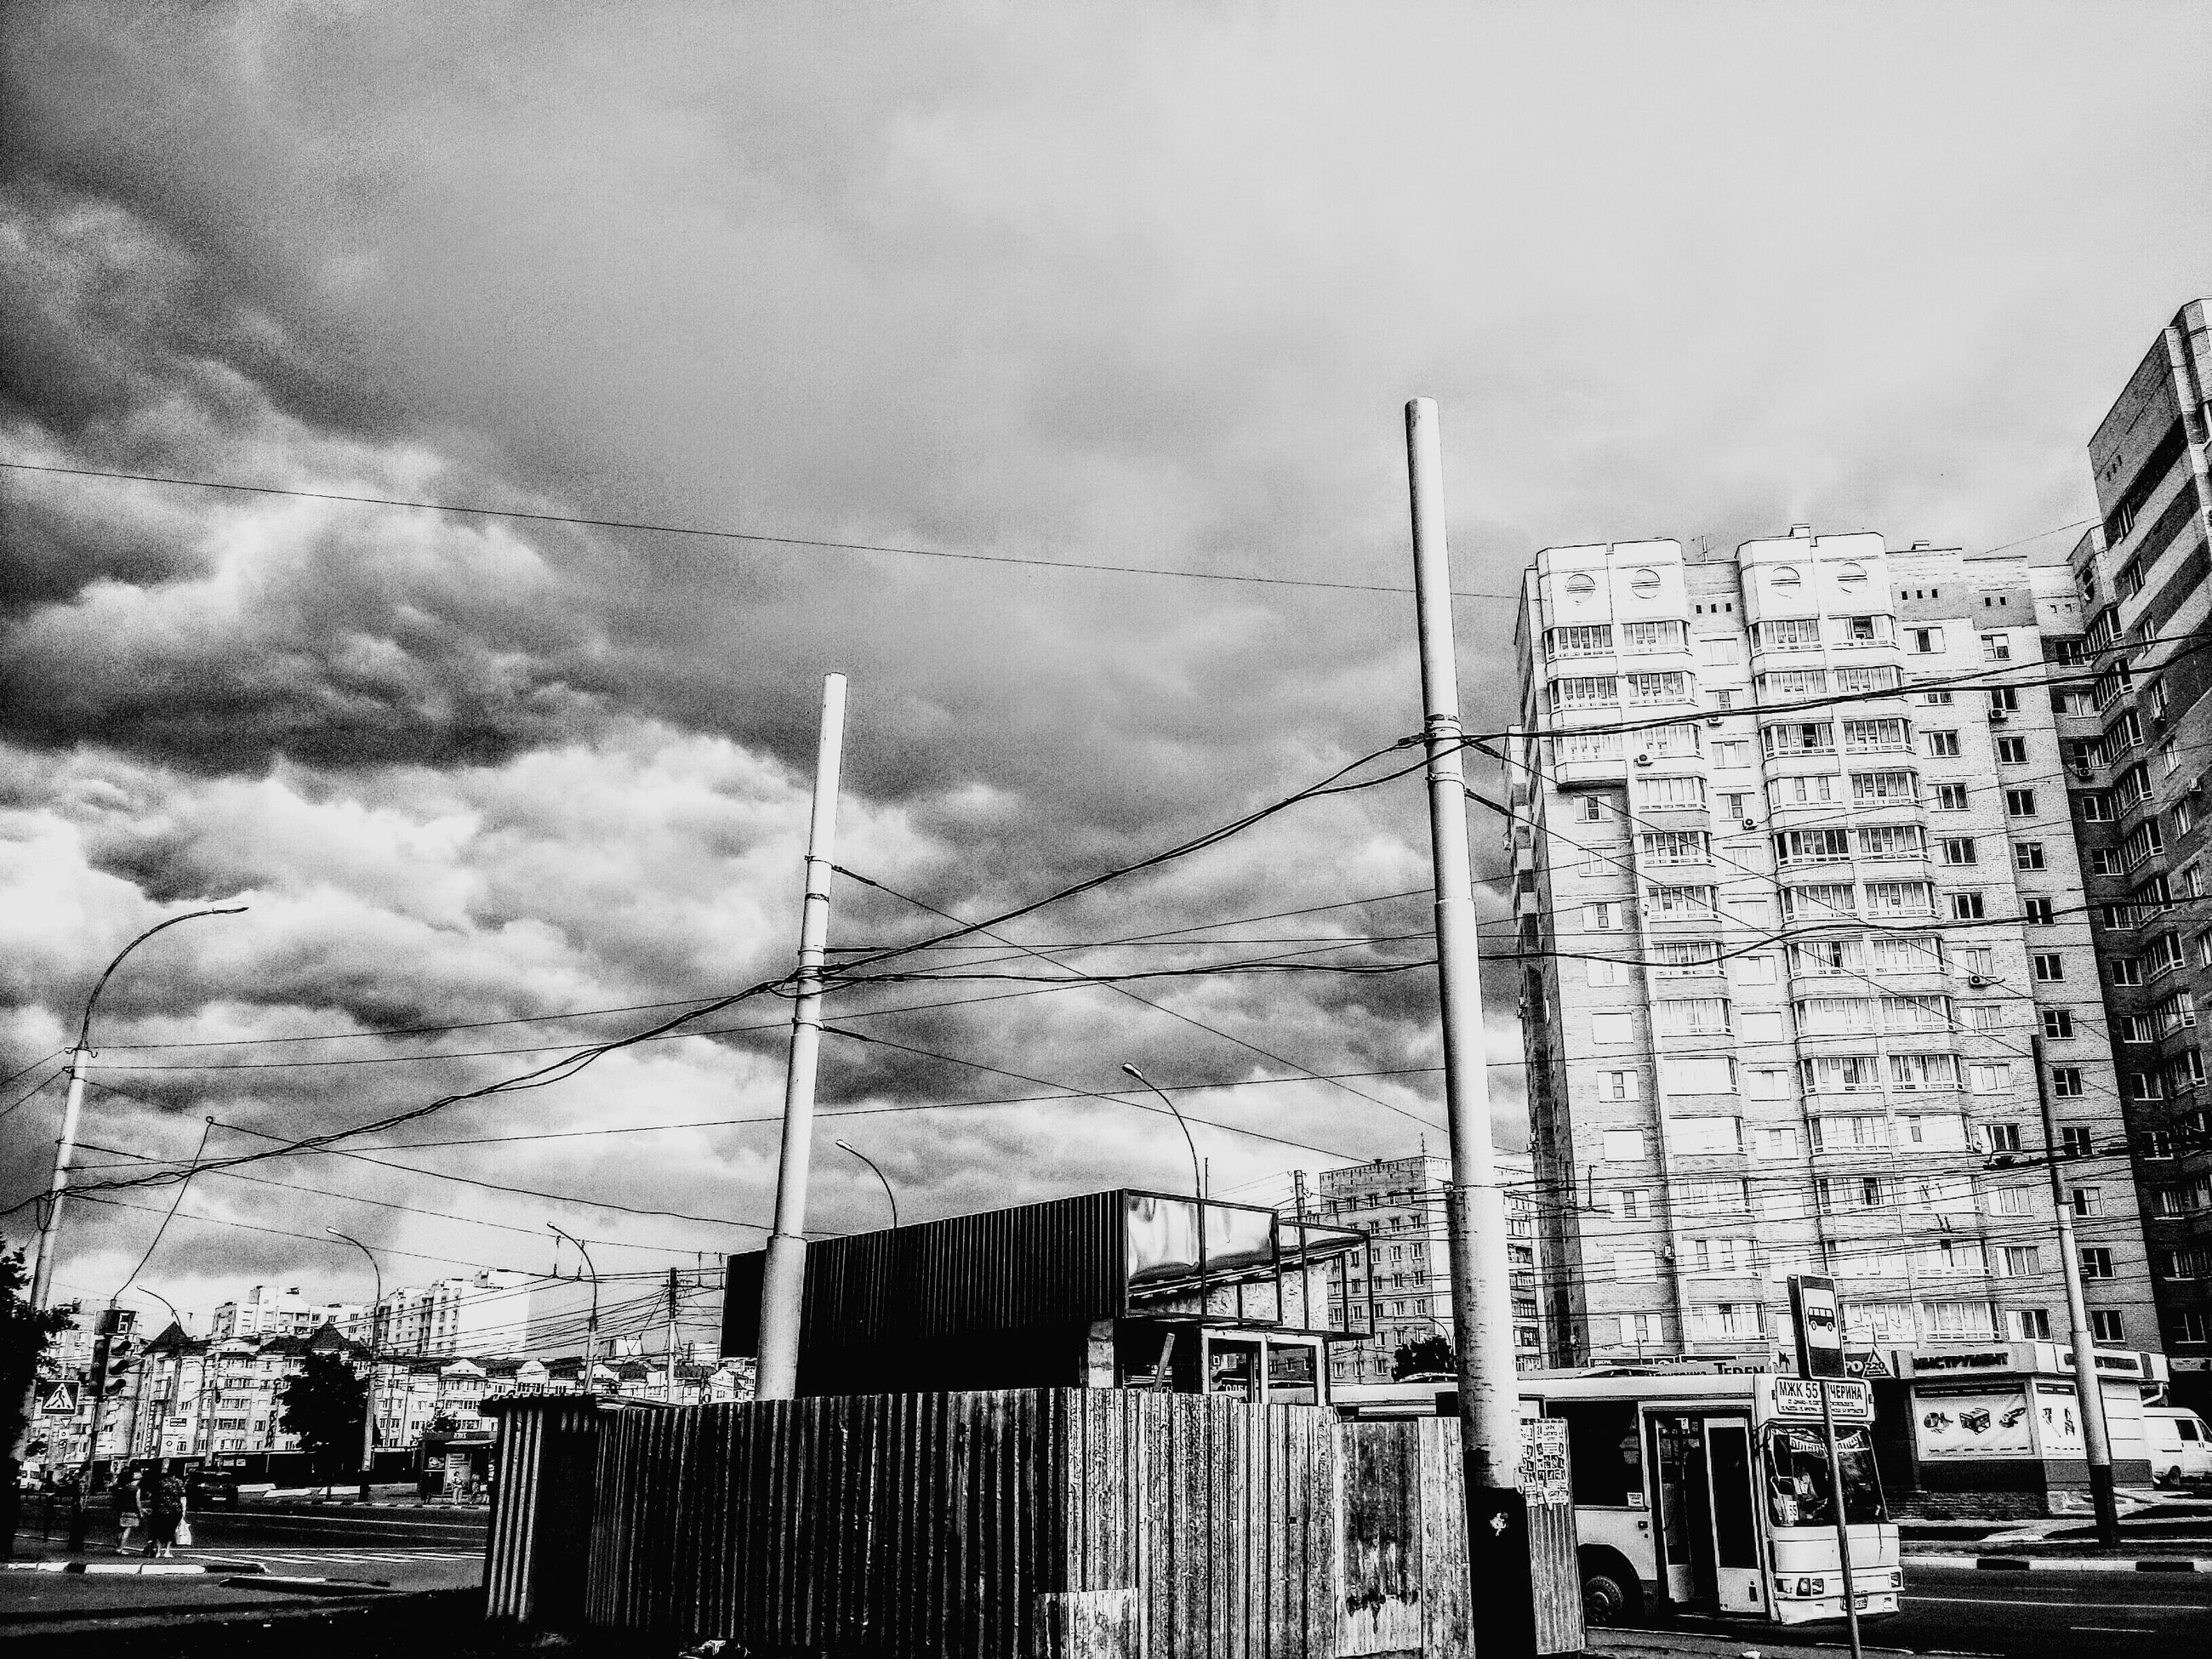 built structure, architecture, building exterior, sky, cable, power line, cloud, day, fence, outdoors, power supply, cloud - sky, high section, tall - high, development, no people